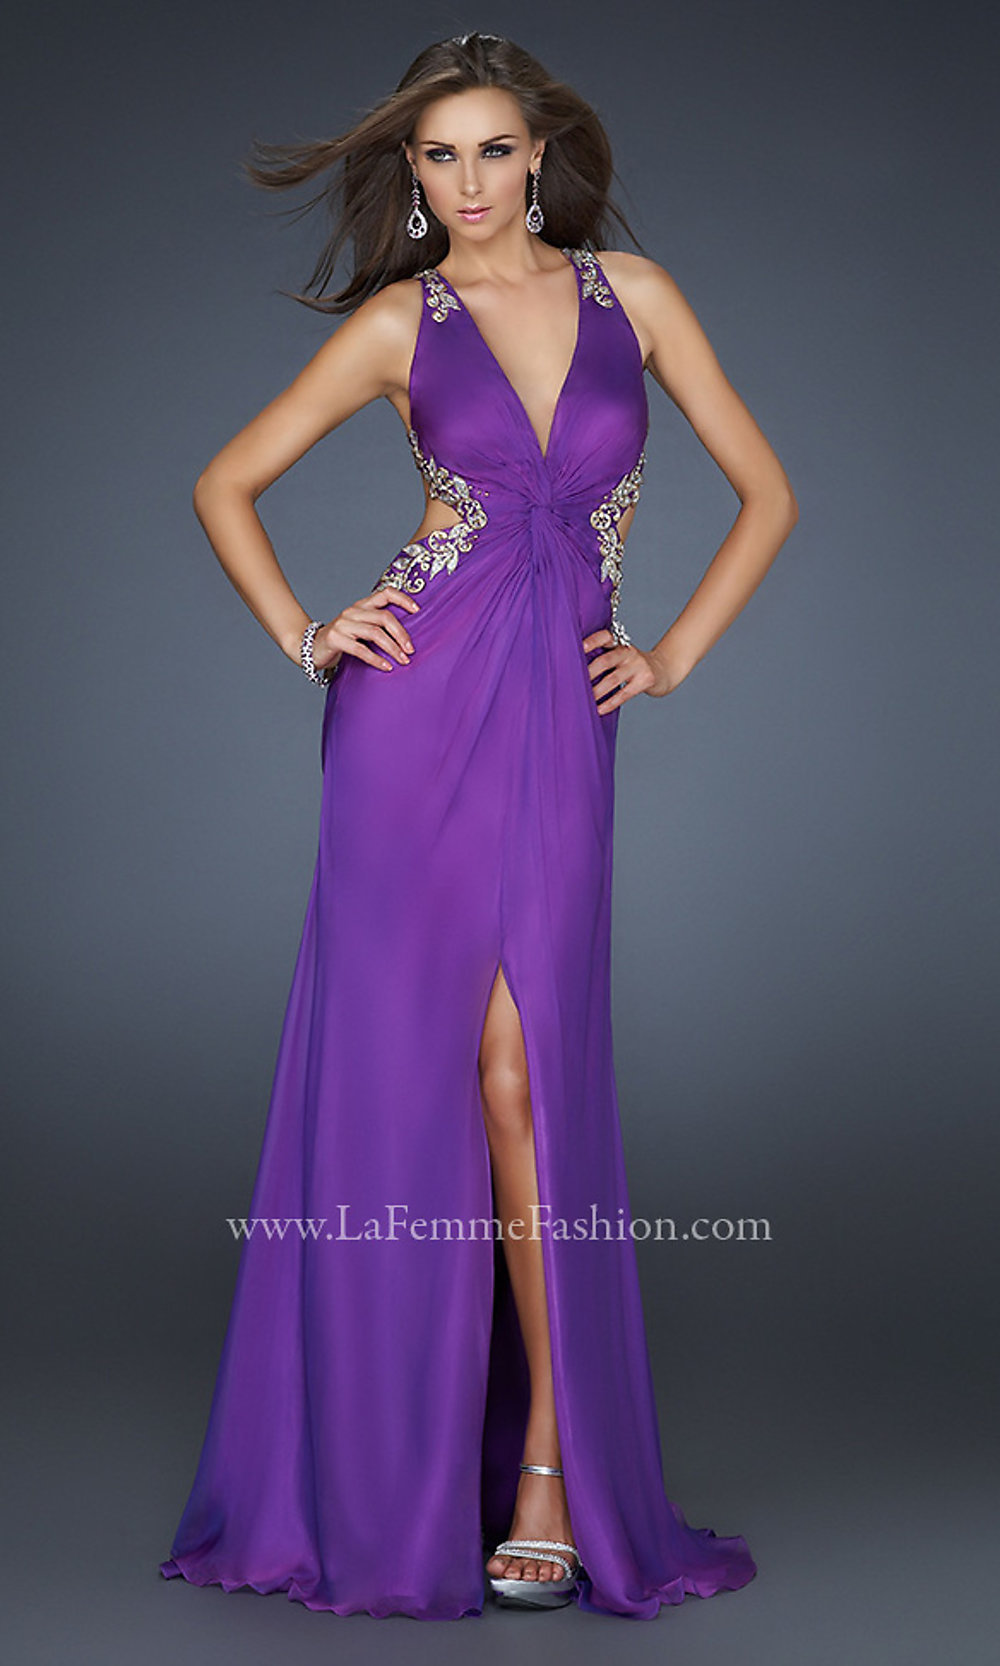 Dorable Low Cut Evening Gowns Pictures - Wedding and flowers ...